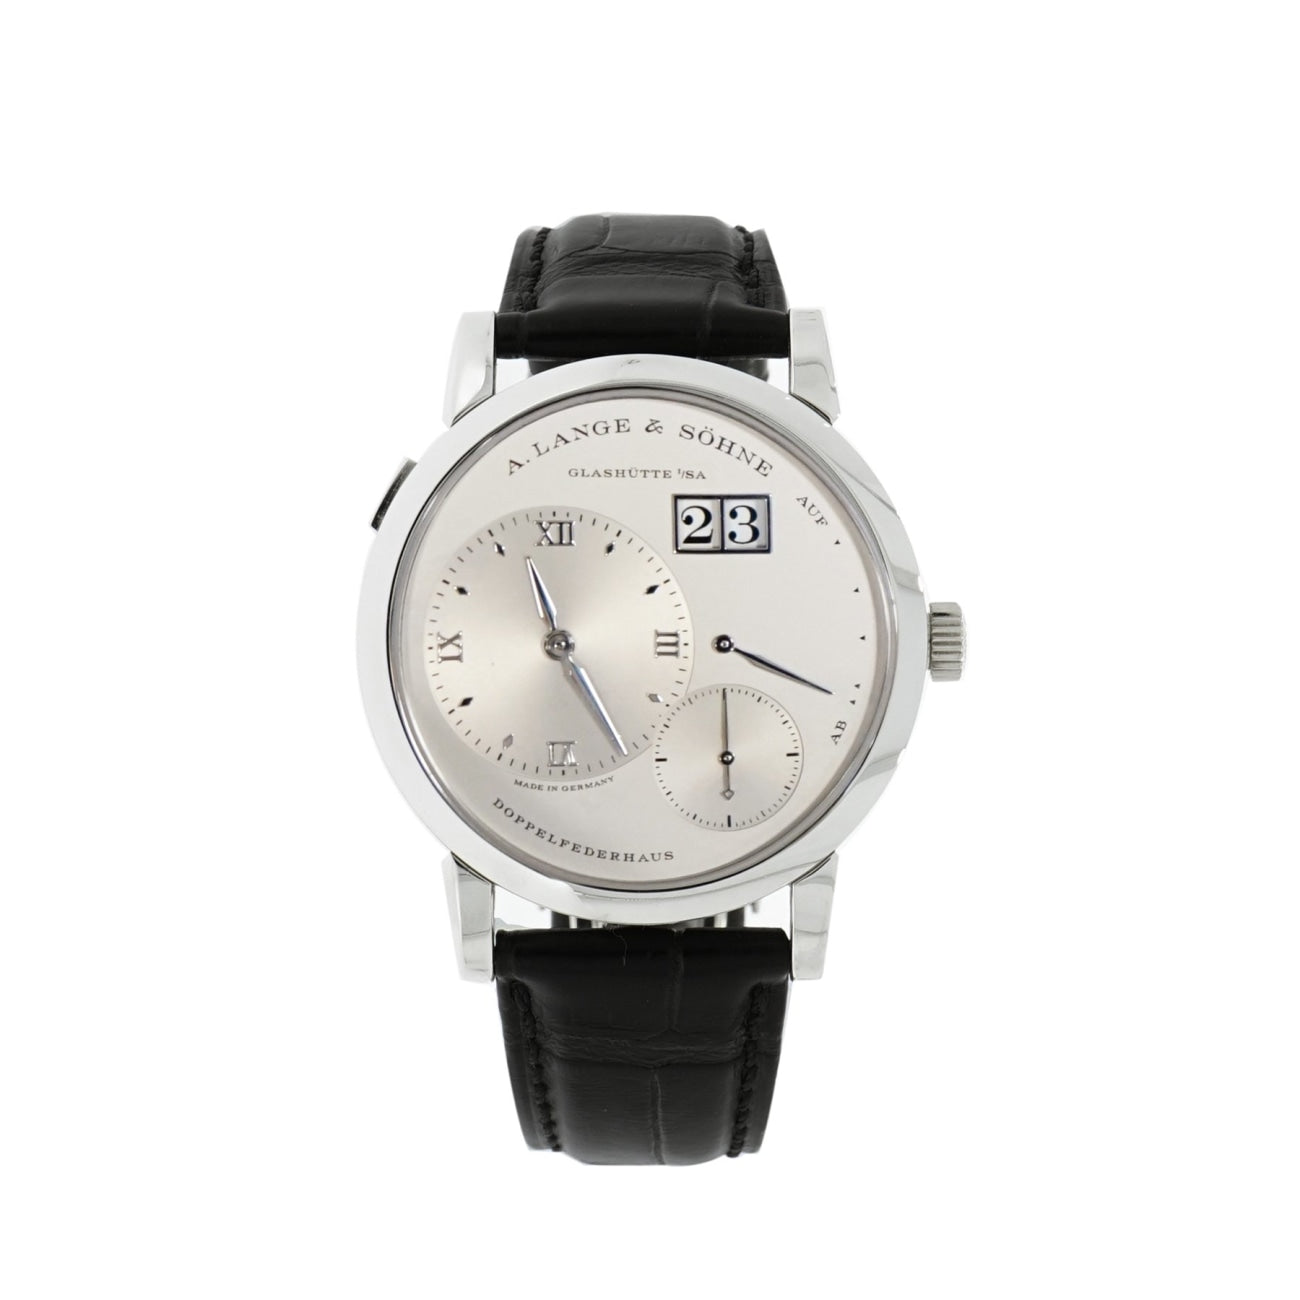 Pre-Owned A. Lange & Sohne Watches - Lange 1 Platinum | Manfredi Jewels